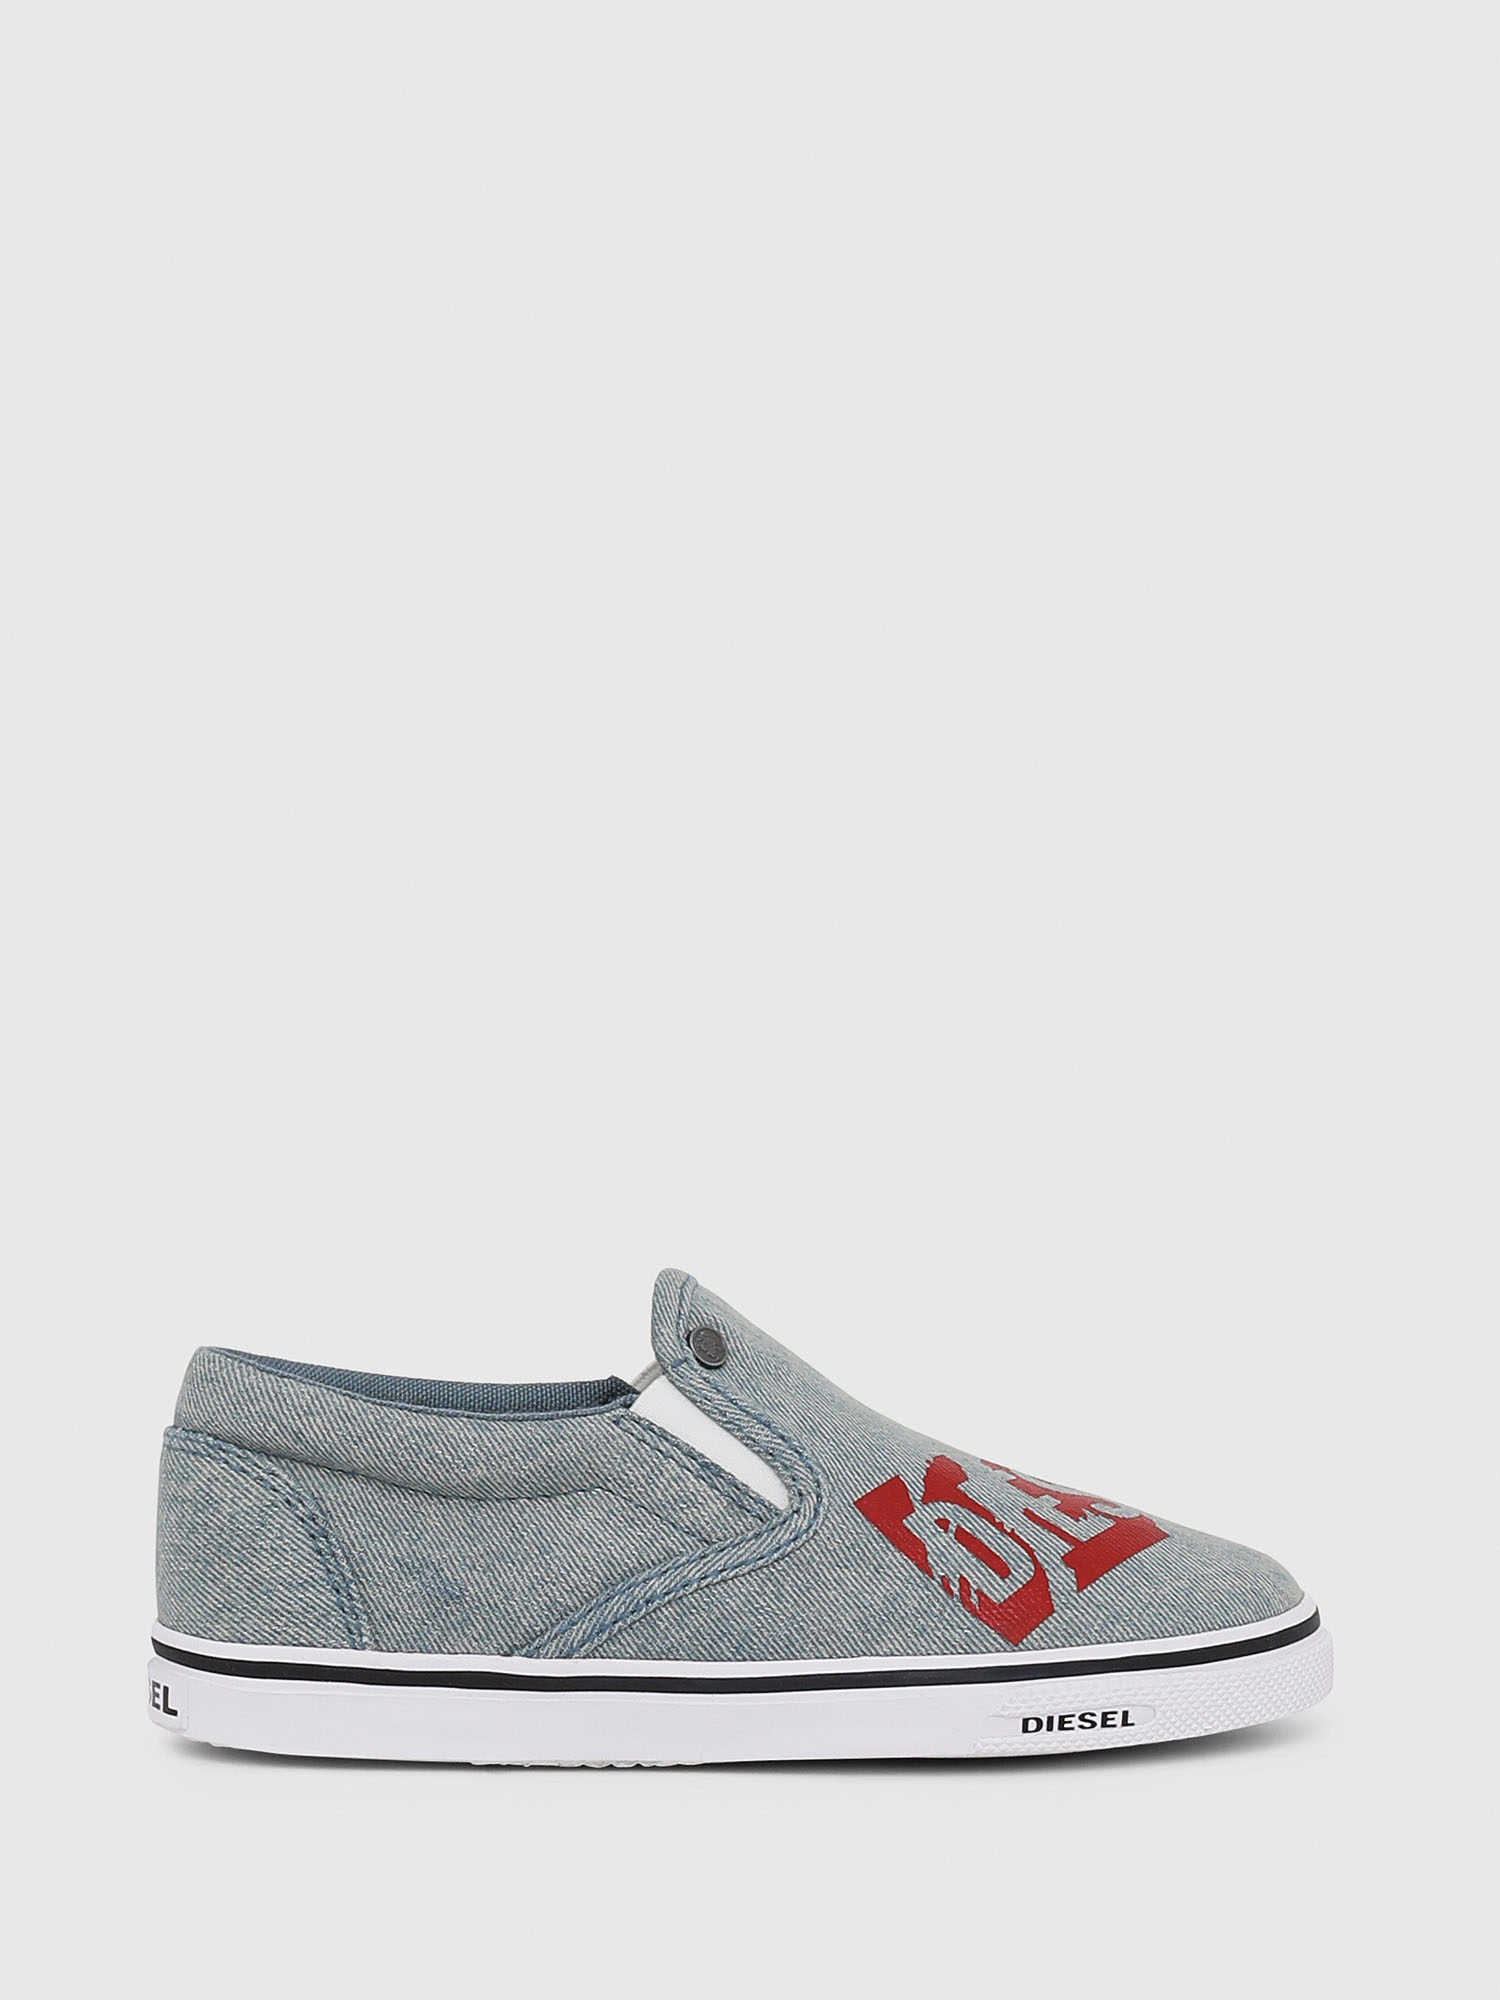 Diesel - SLIP ON 21 DENIM YO,  - Footwear - Image 1